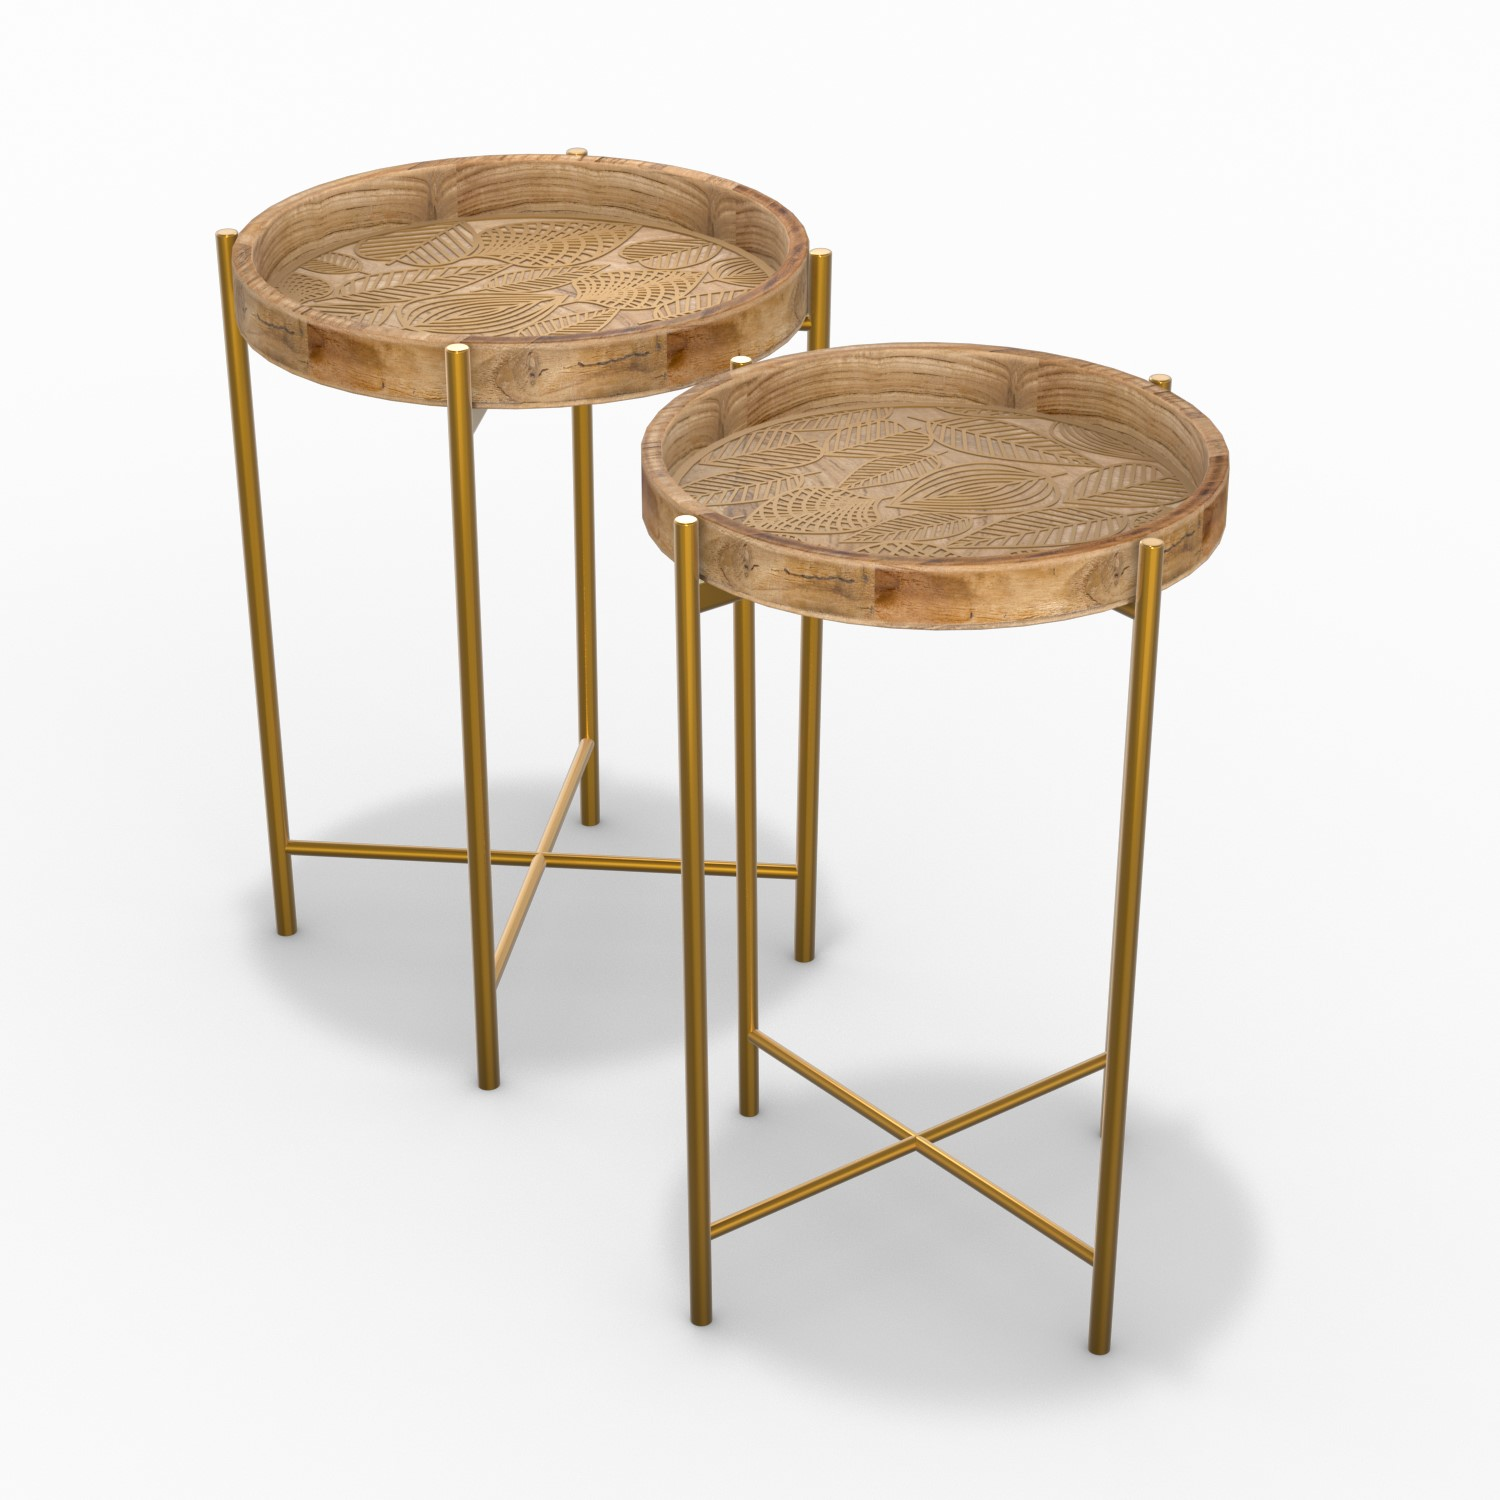 Picture of: Set Of 2 Wooden Side Table With Gold Legs Elis Furniture123